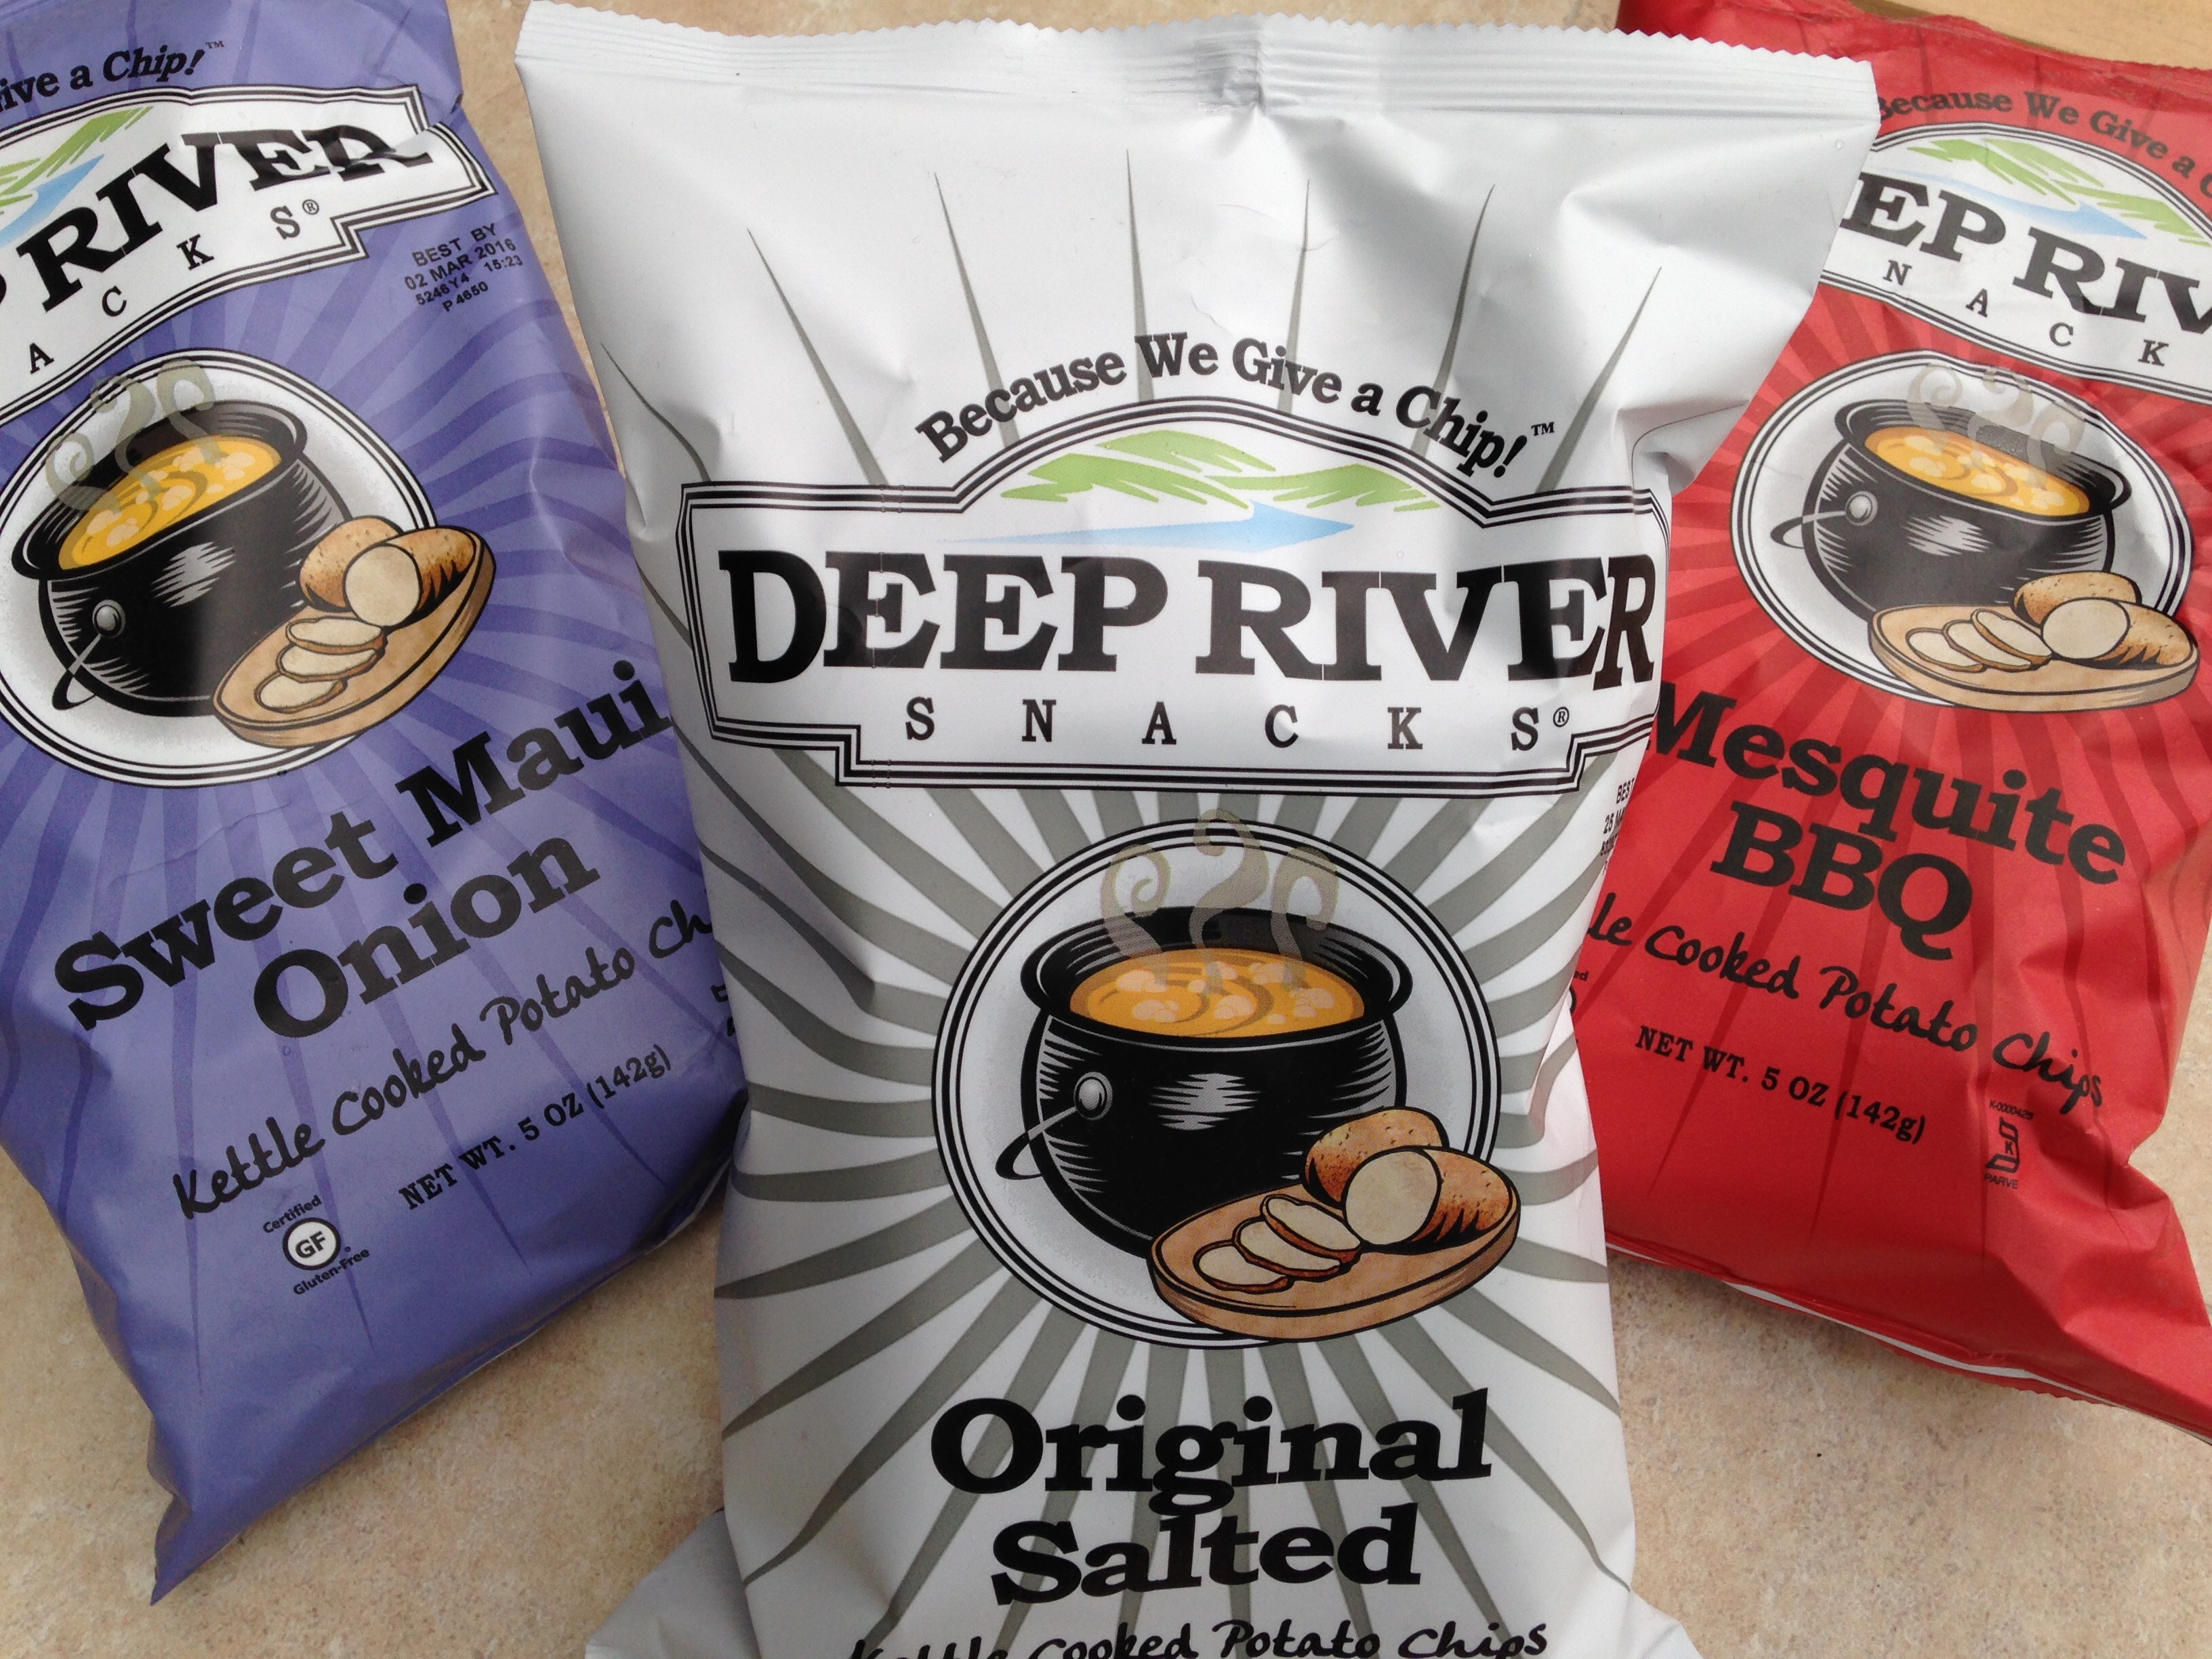 Large Bag Deep River Chips Image